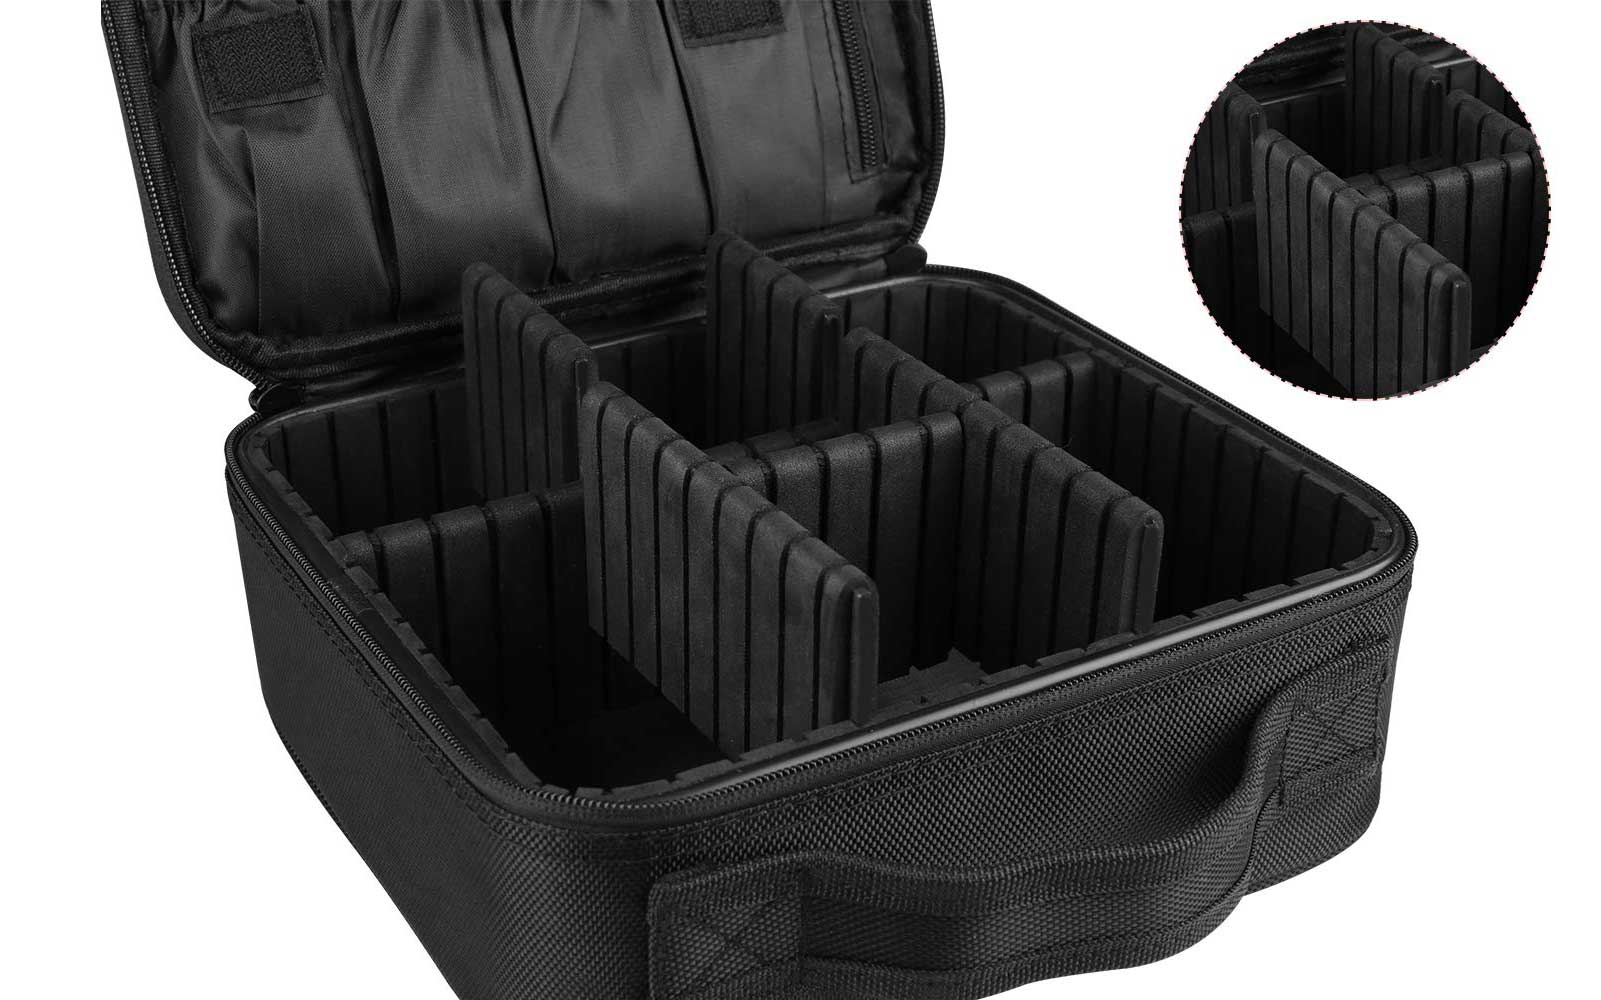 Amazon shoppers are raving about this customizable travel makeup case